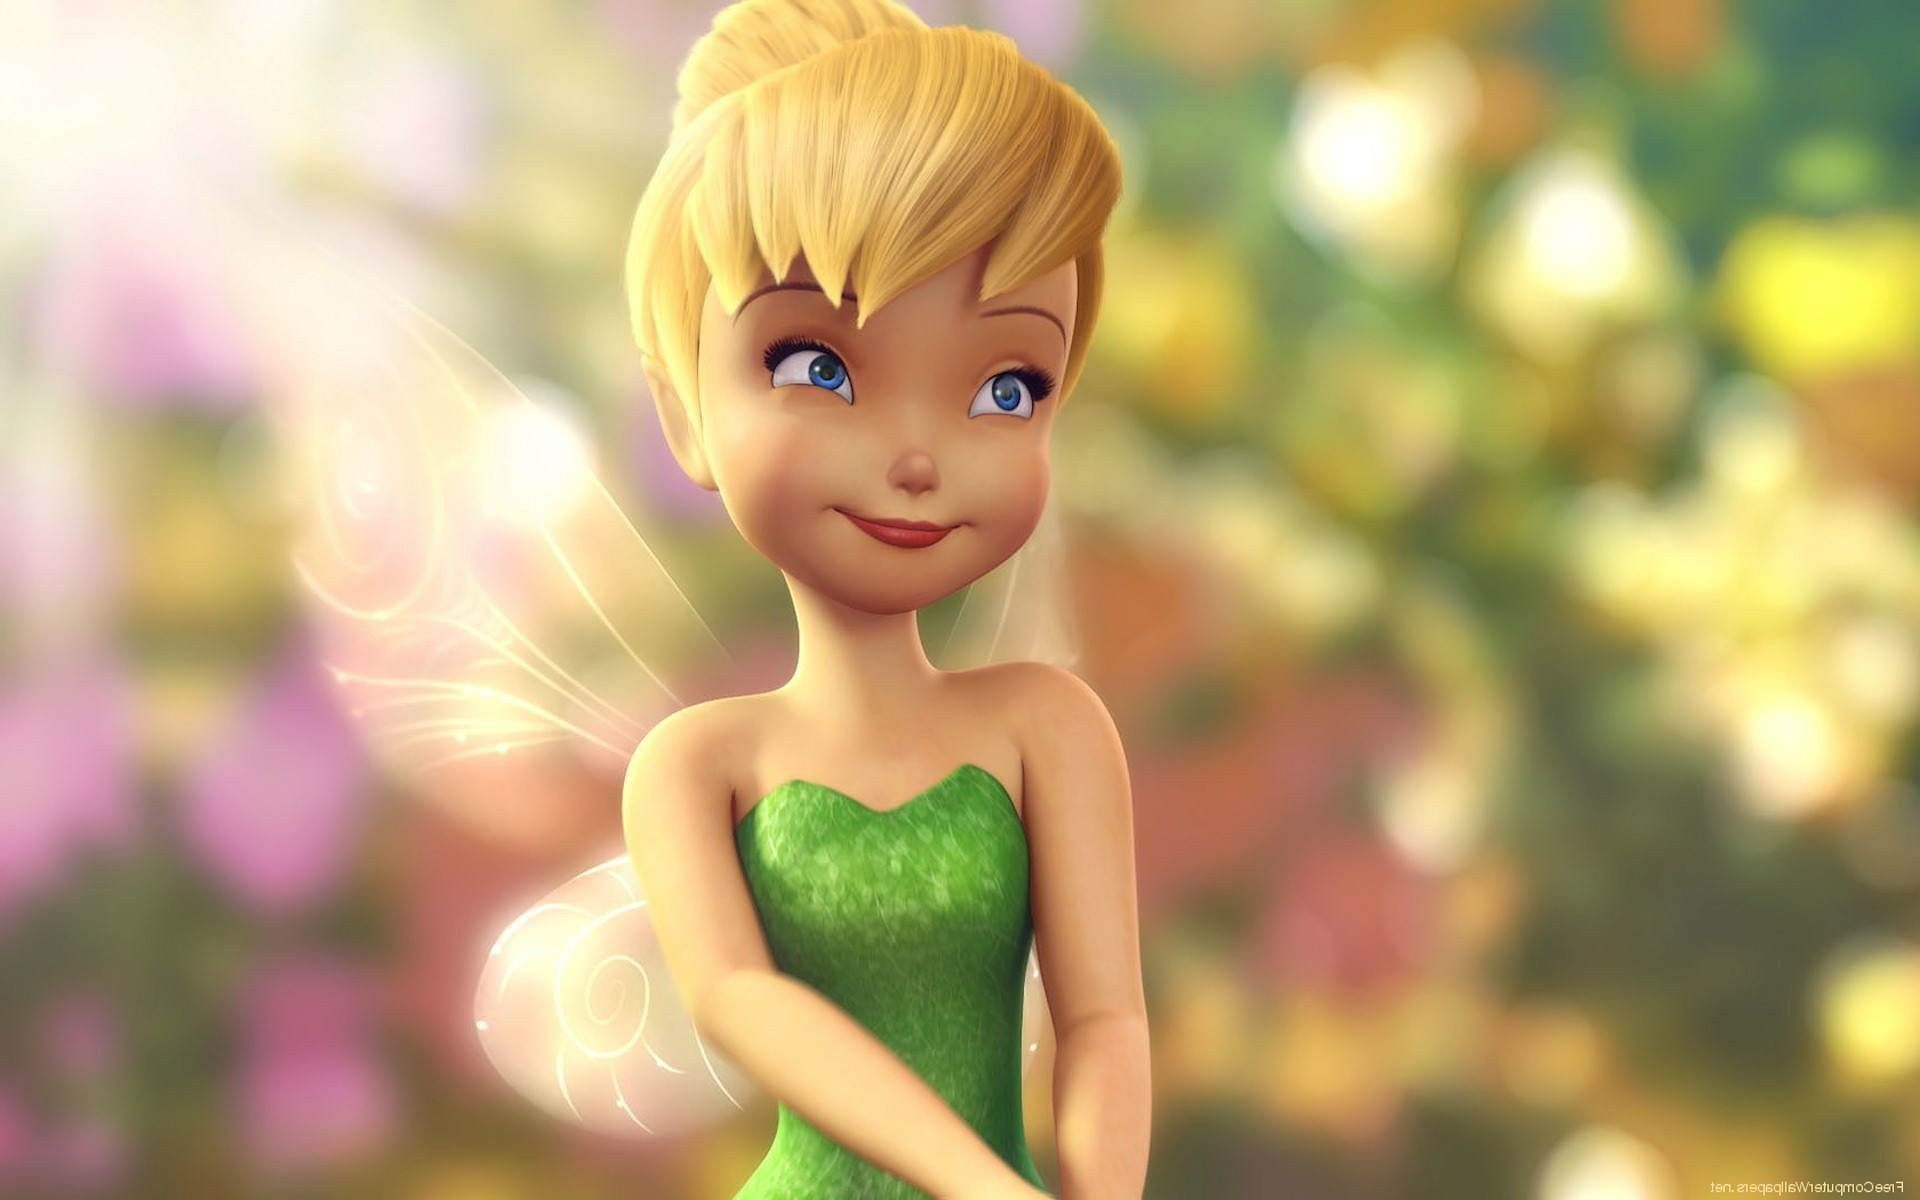 1920x1200 imagenes de tinkerbell 1024×768 Imagenes De Tinkerbell Wallpapers (28  Wallpapers) | Adorable